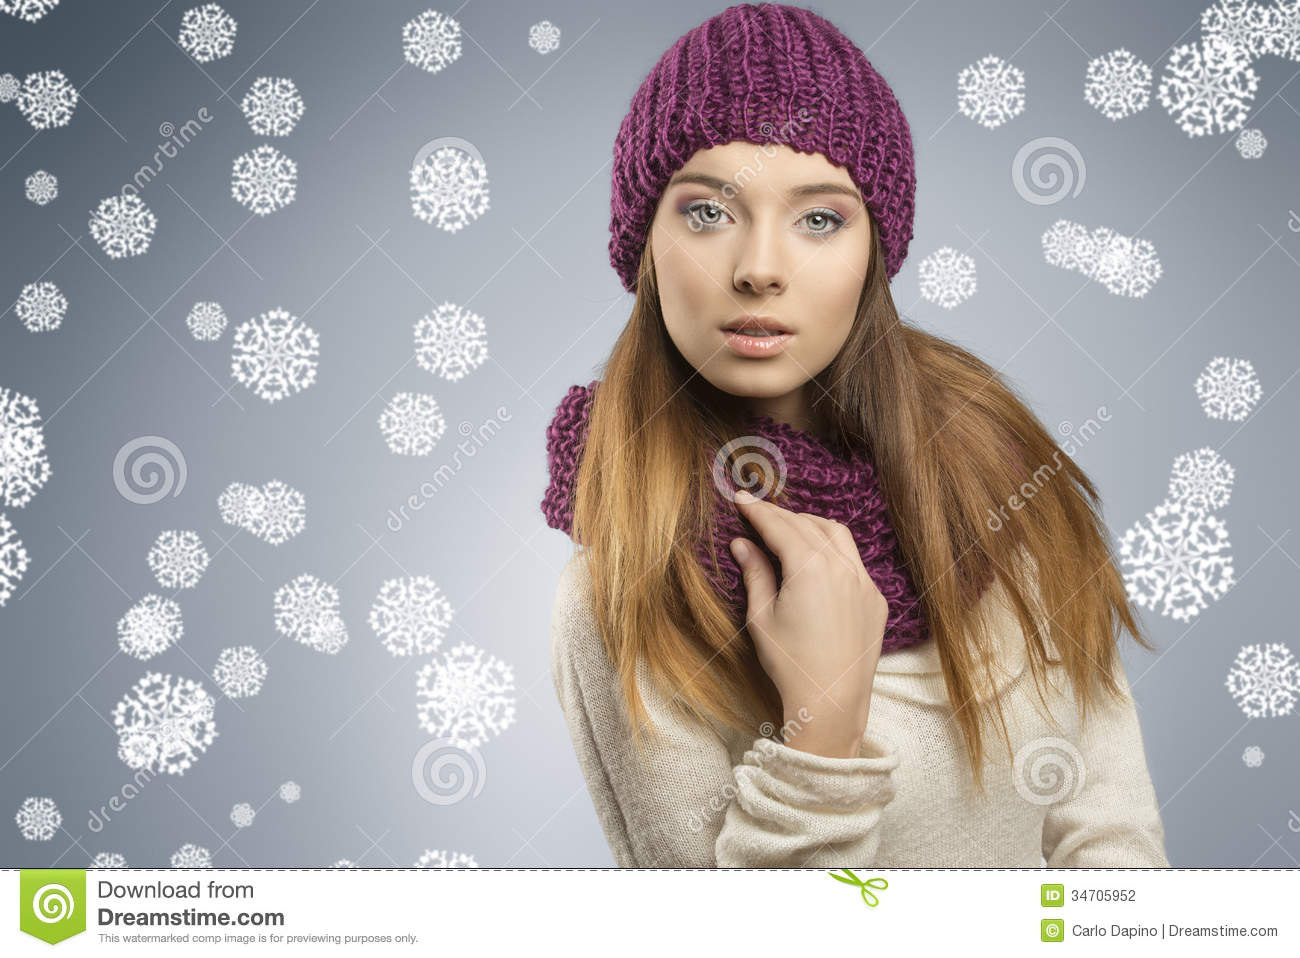 Hair Style Jeans: Pretty Girl With Fashion Winter Clothes Stock Photo